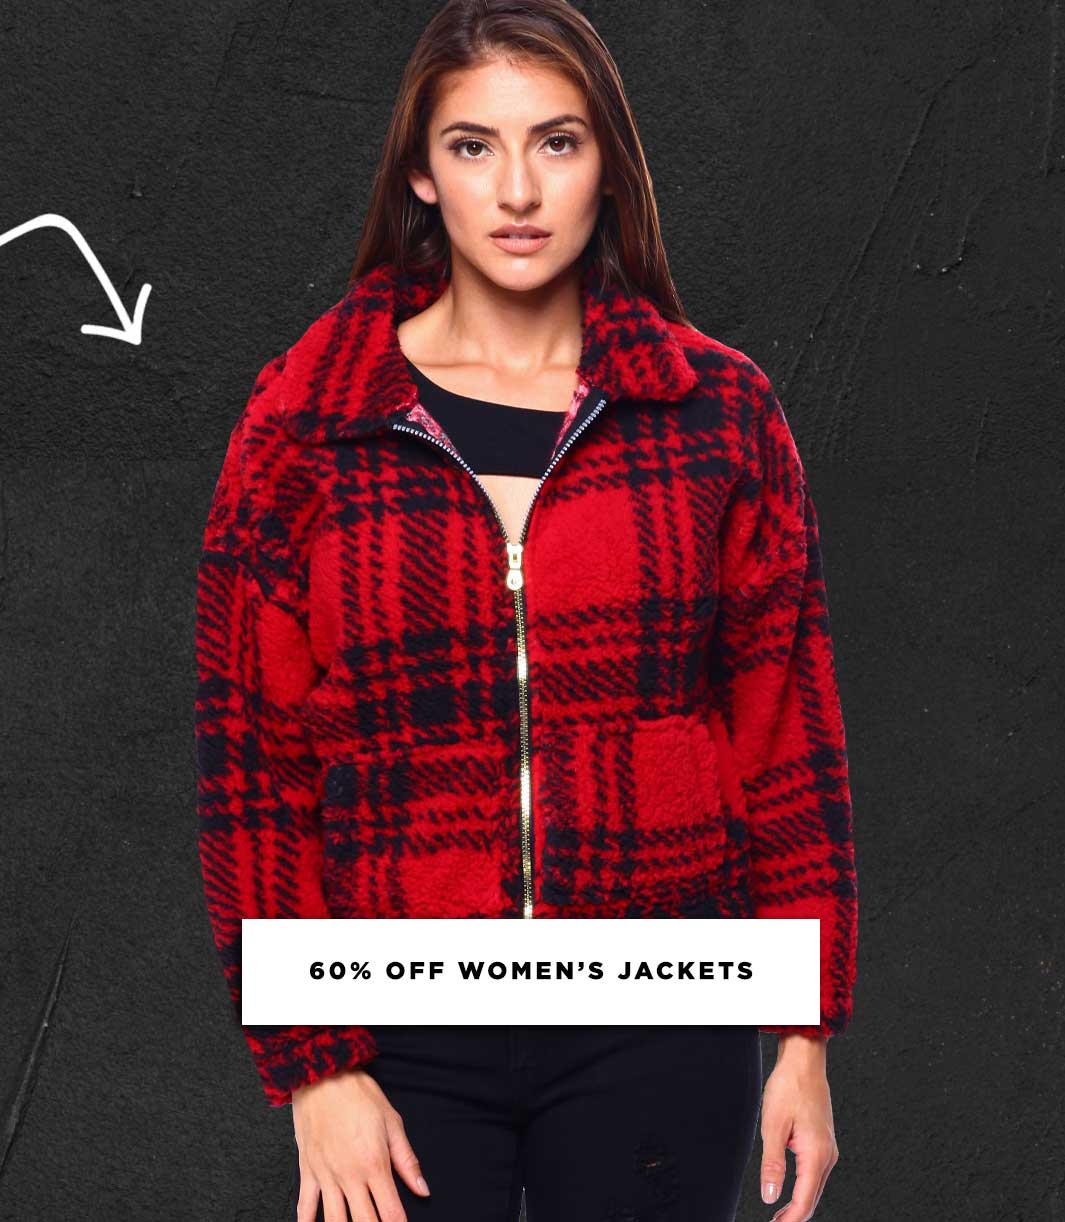 Women's New Jackets Arrivals